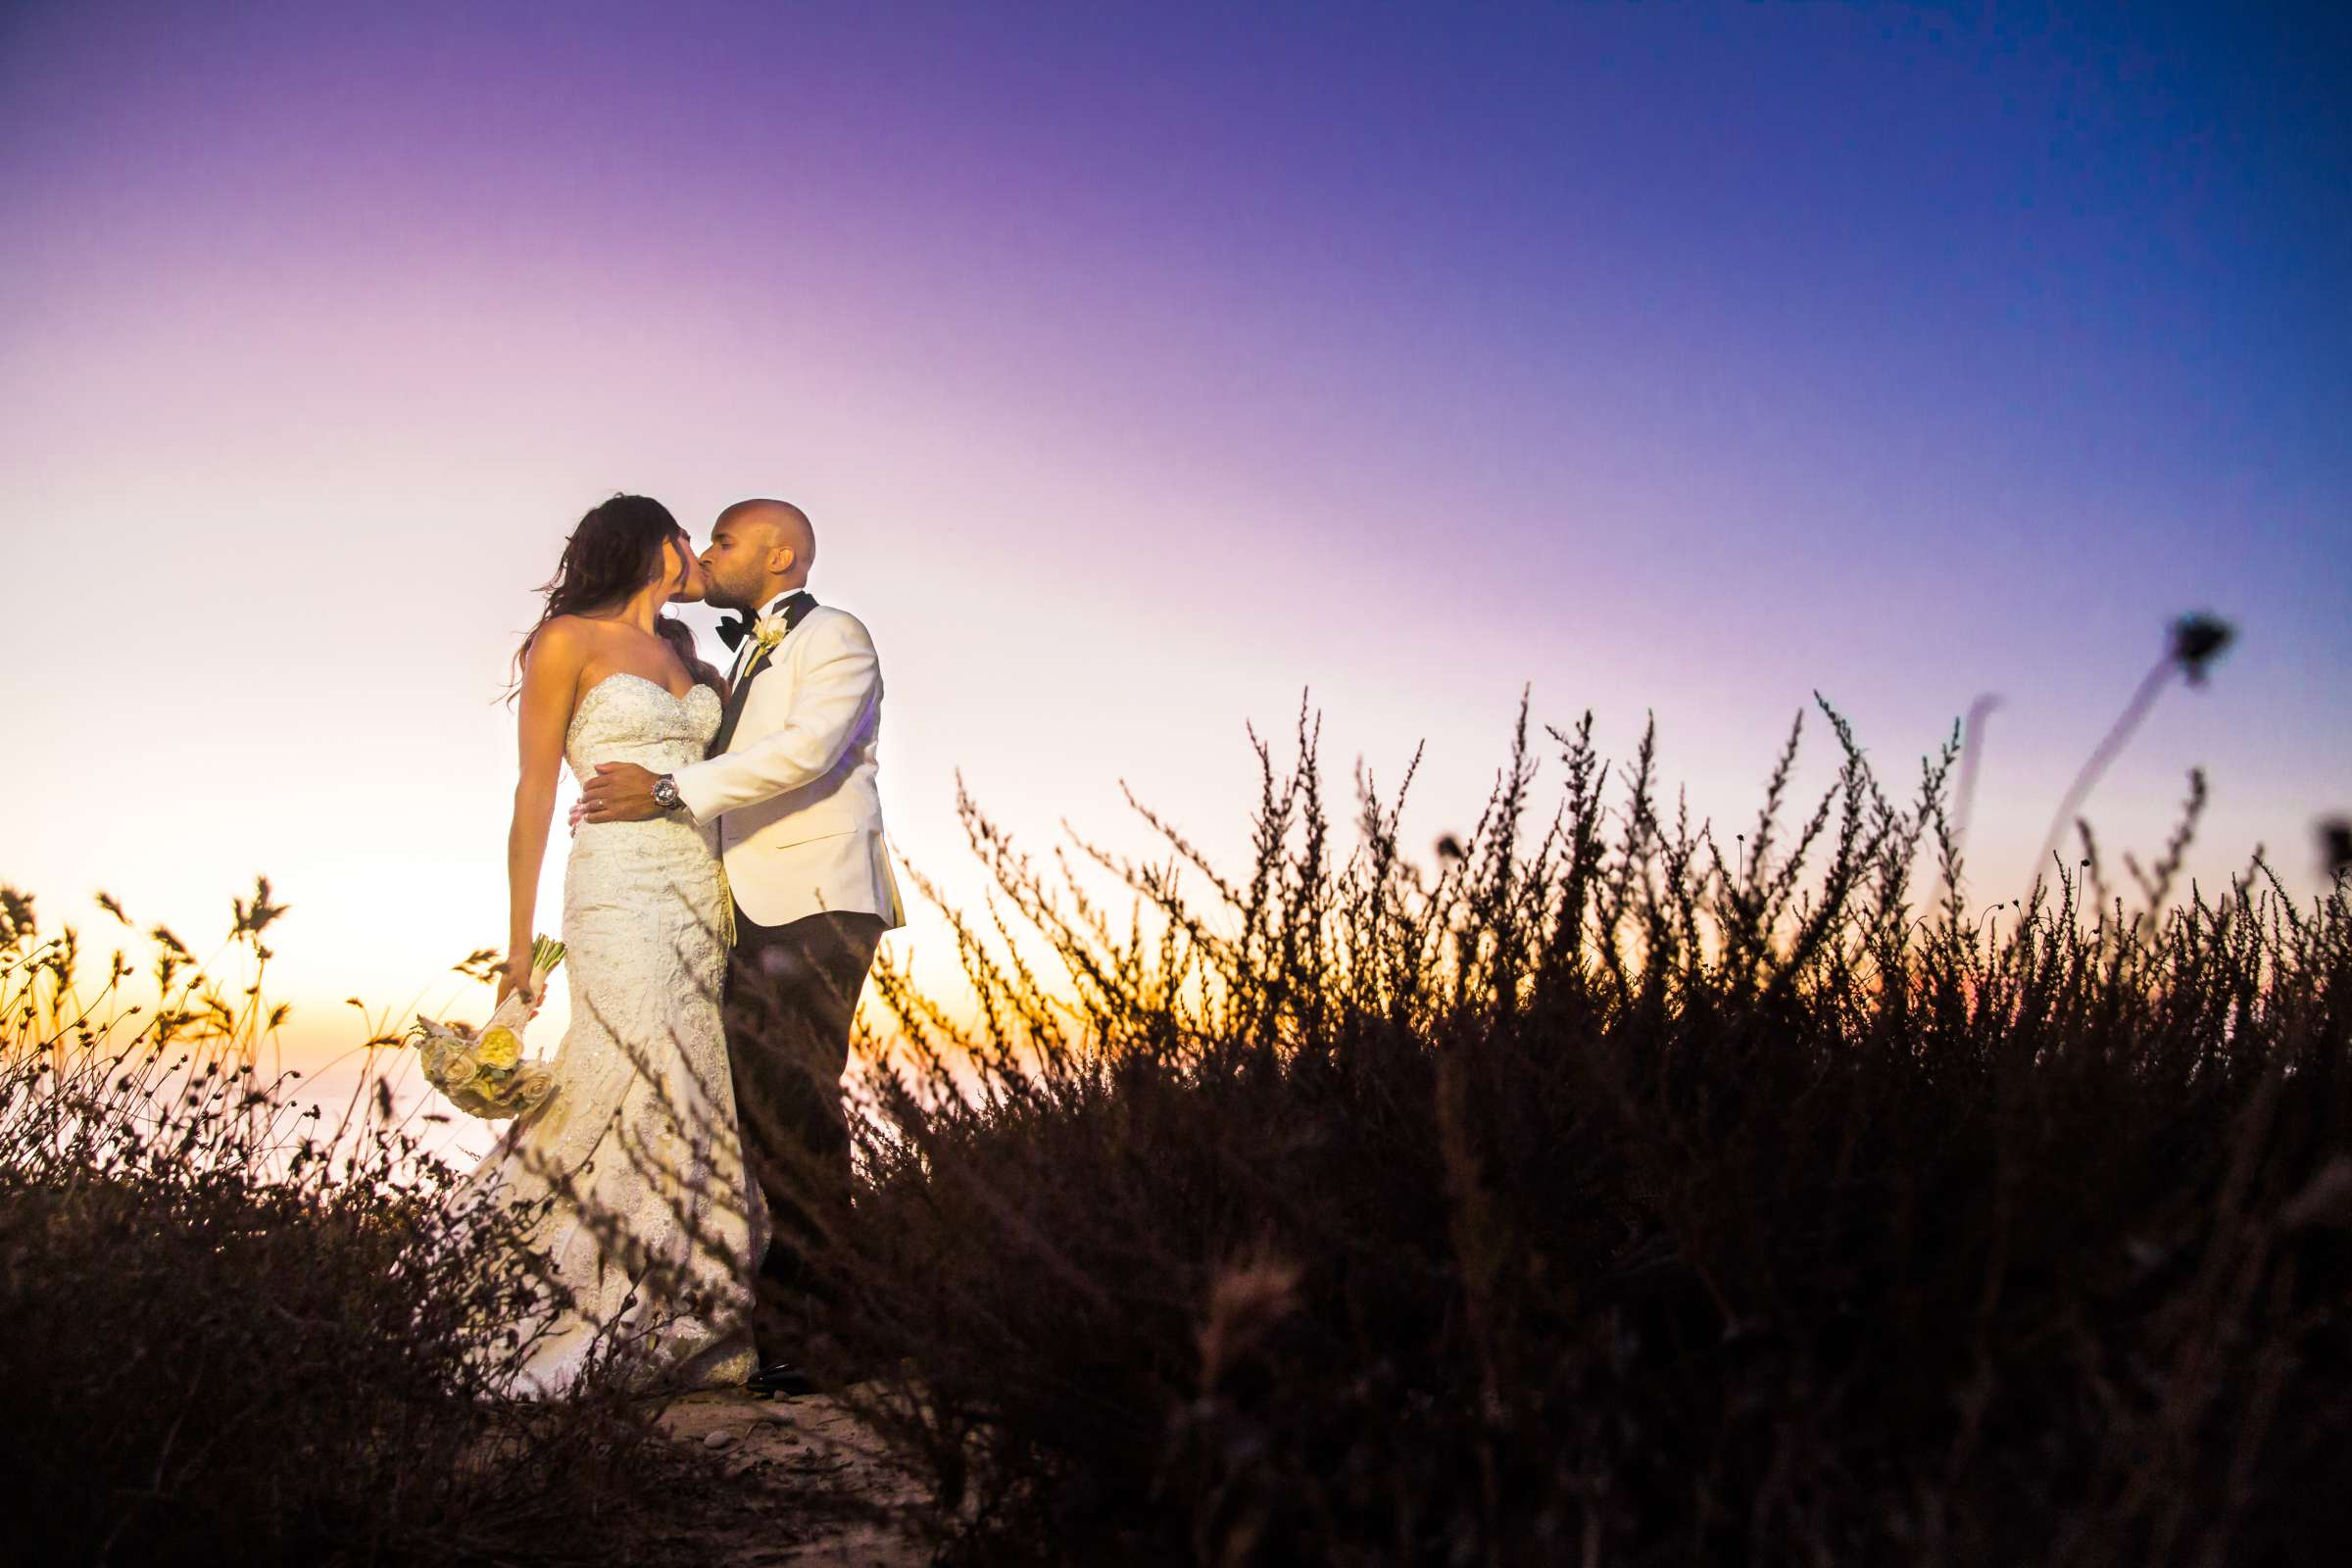 Estancia Wedding coordinated by LVL Weddings & Events, Rebecca and Michael Wedding Photo #22 by True Photography